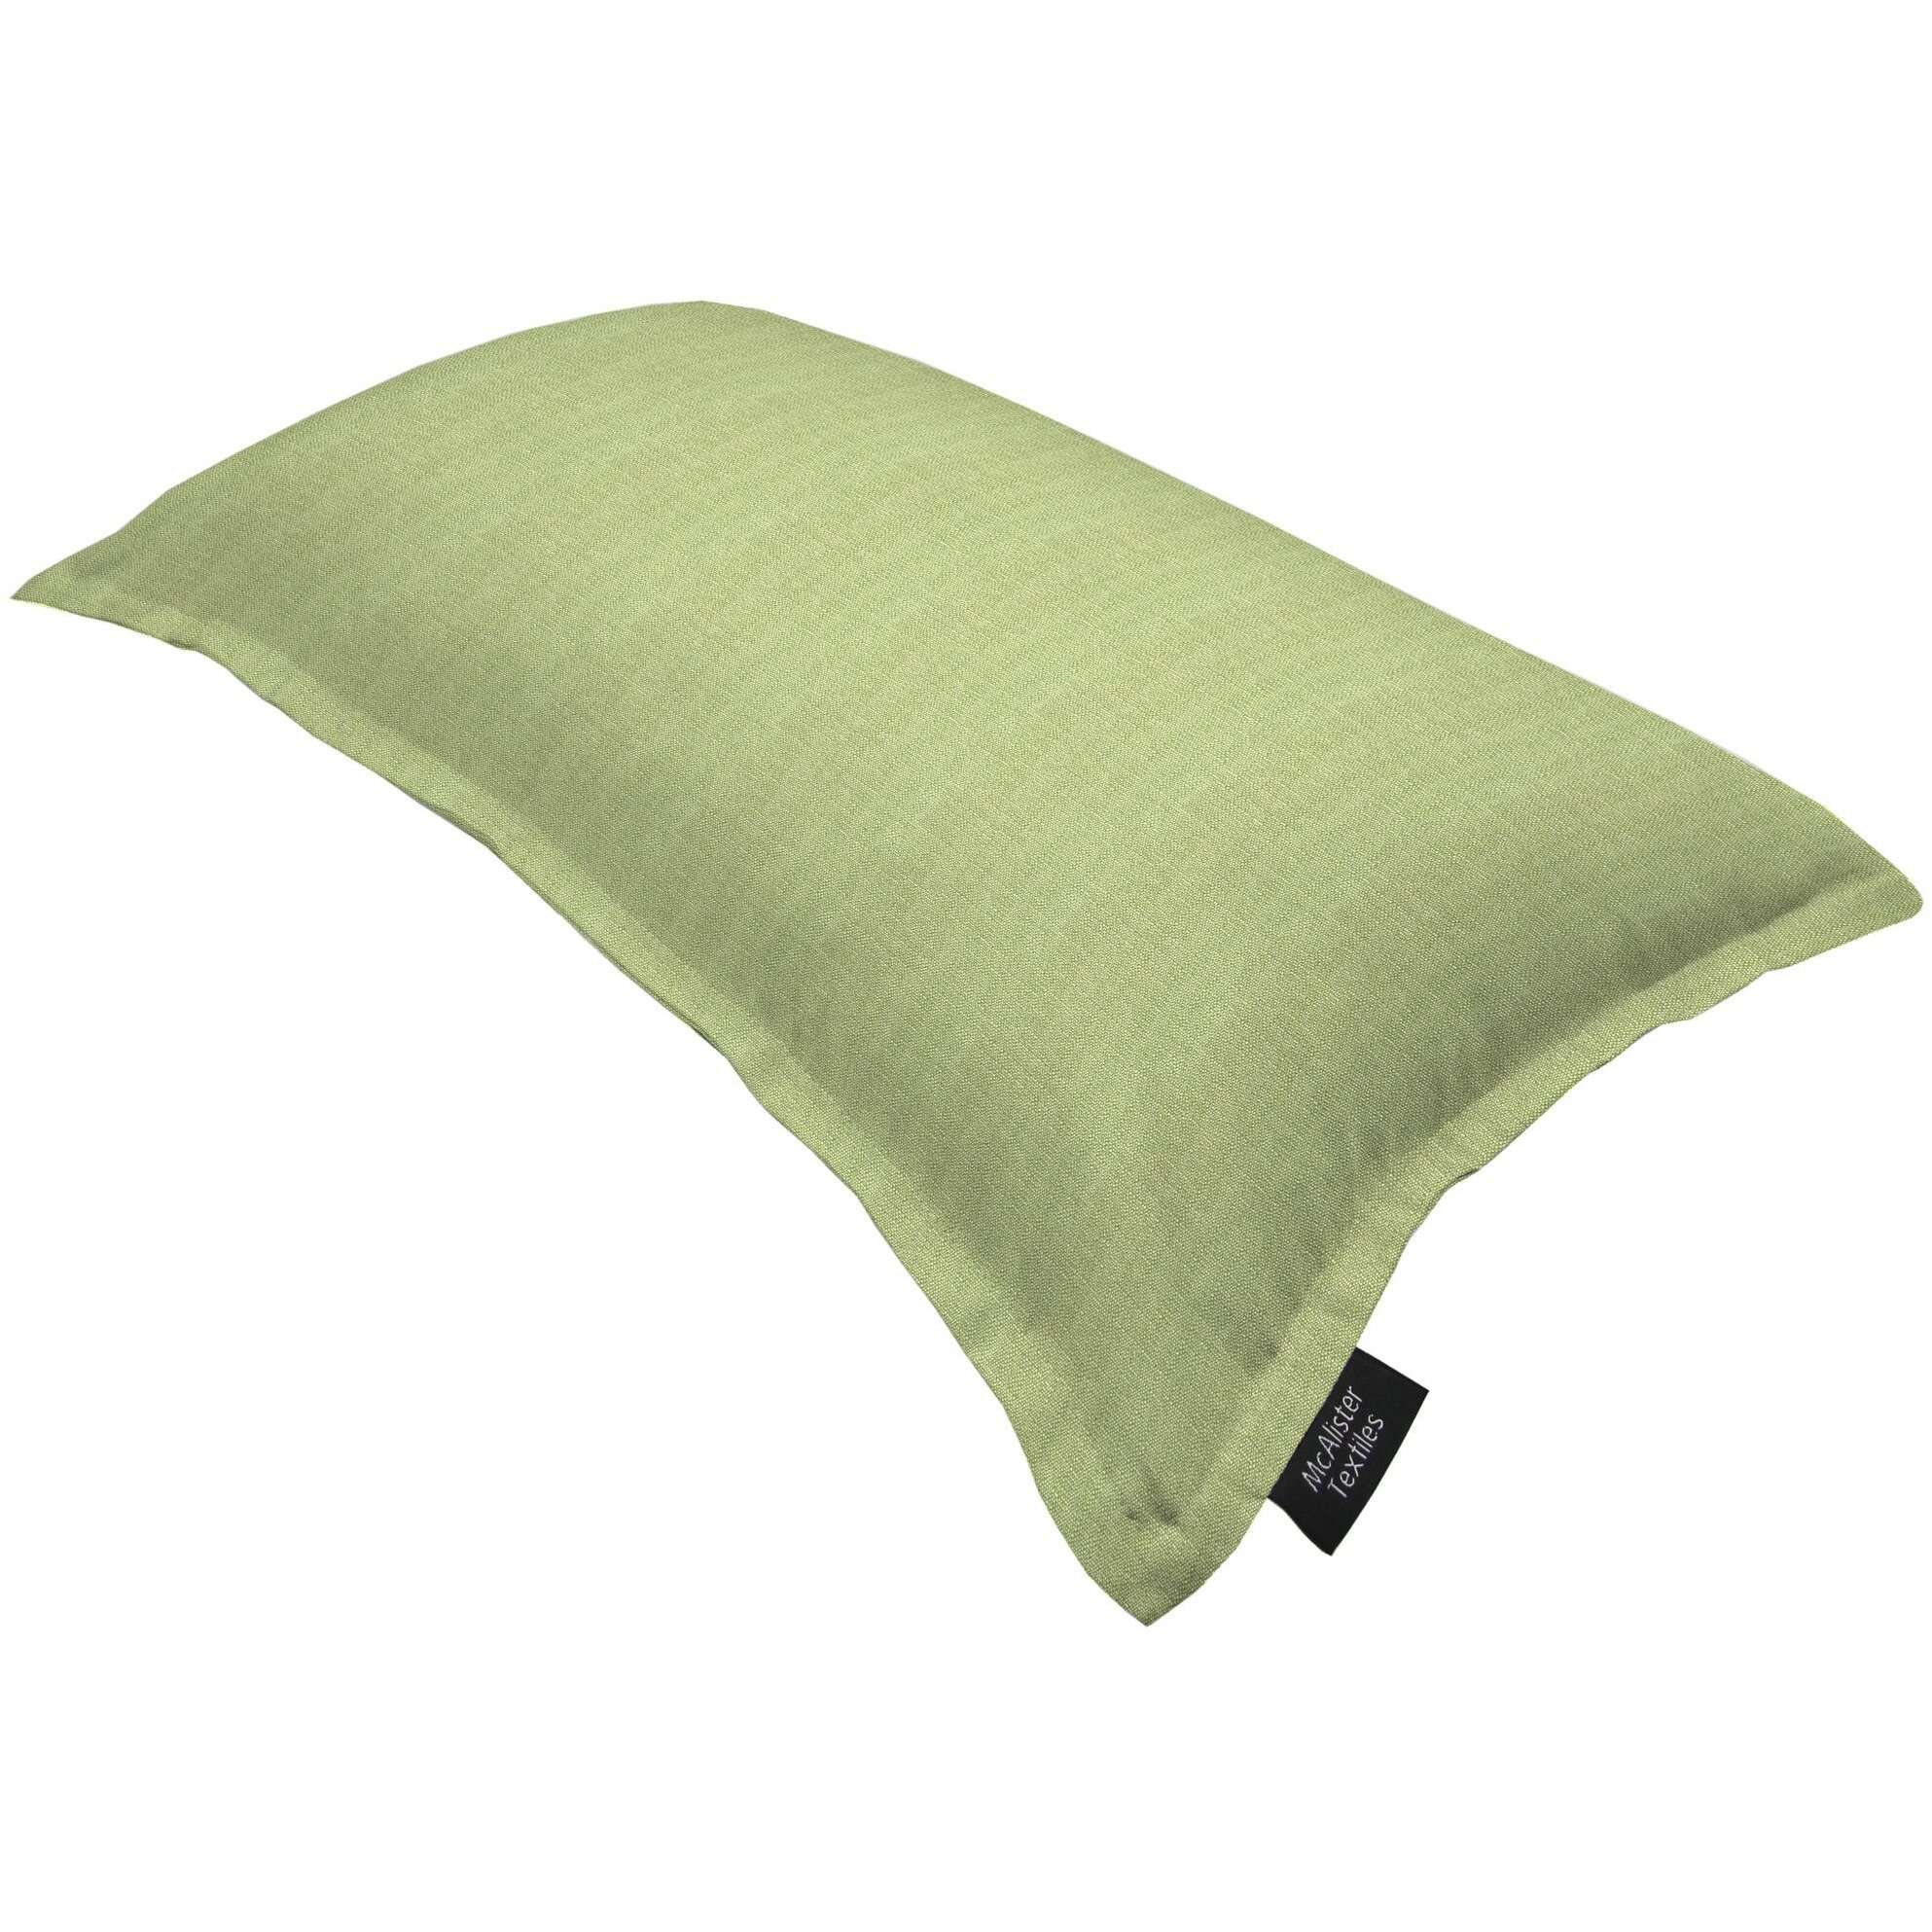 McAlister Textiles Savannah Sage Green Cushion Cushions and Covers